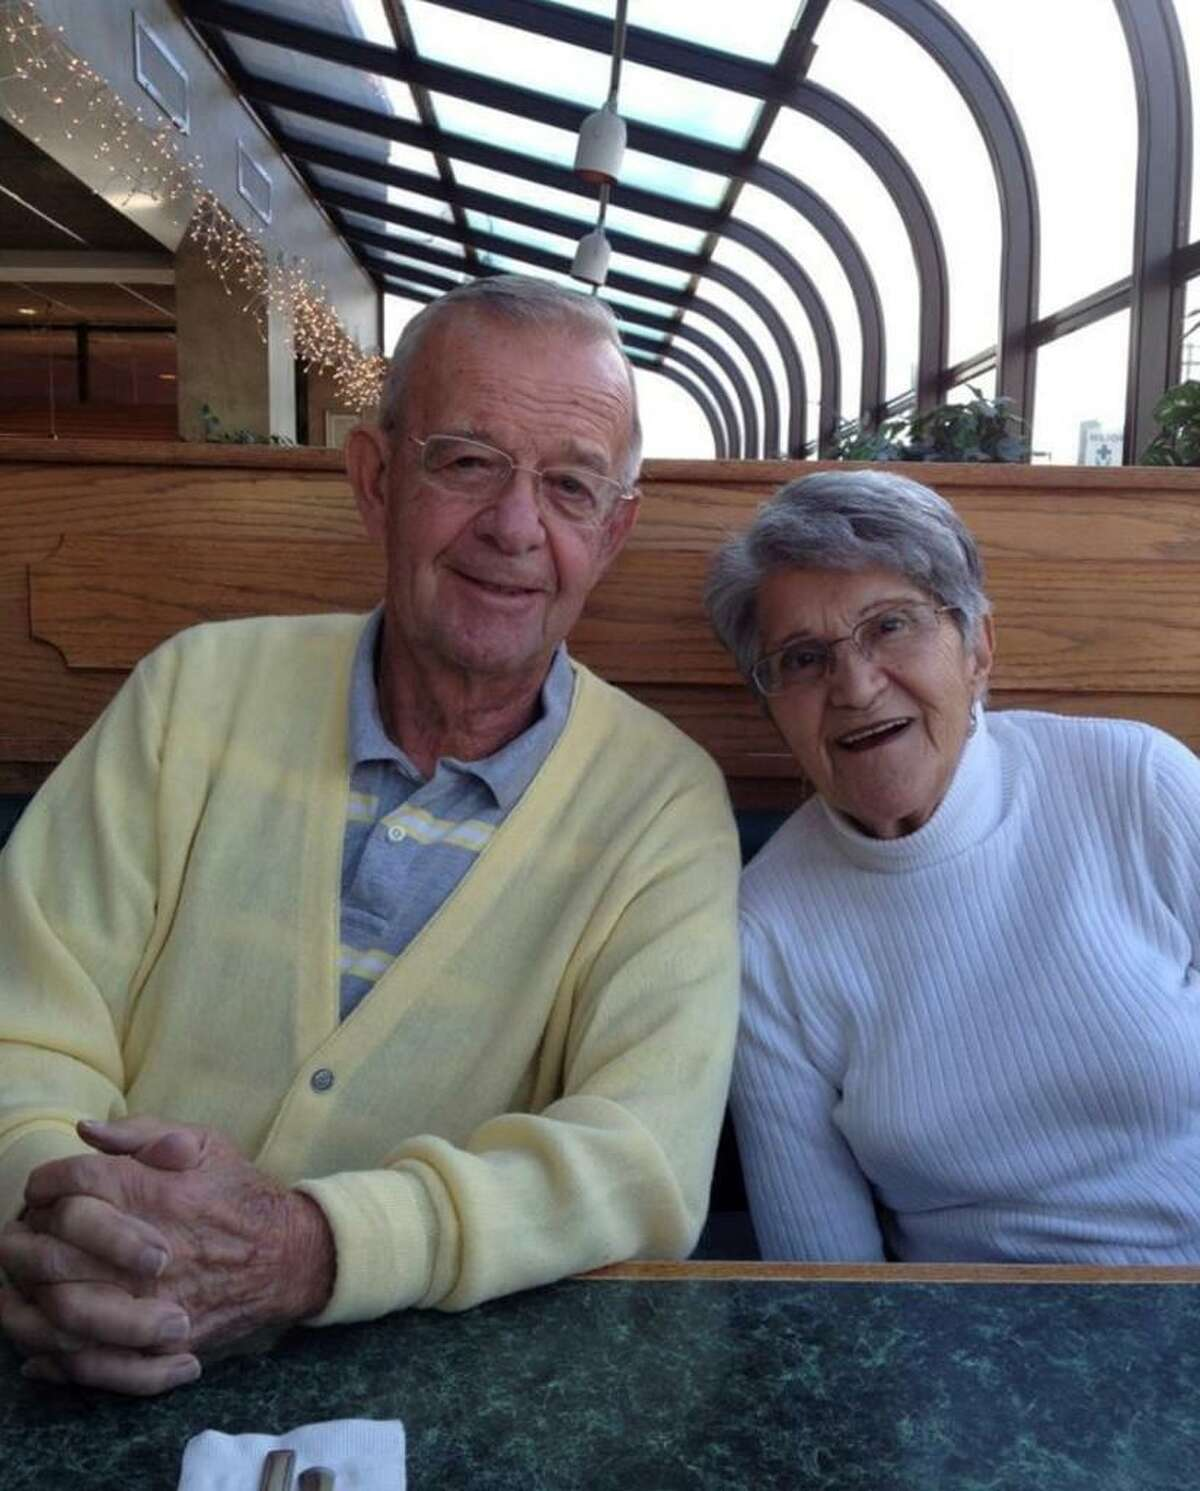 Richard Louis Rettig died on April 10, 2020 after reaching 86 years of age. He died peacefully at West River Health Care Center in Milford, CT with his beloved wife Catherine by his side.